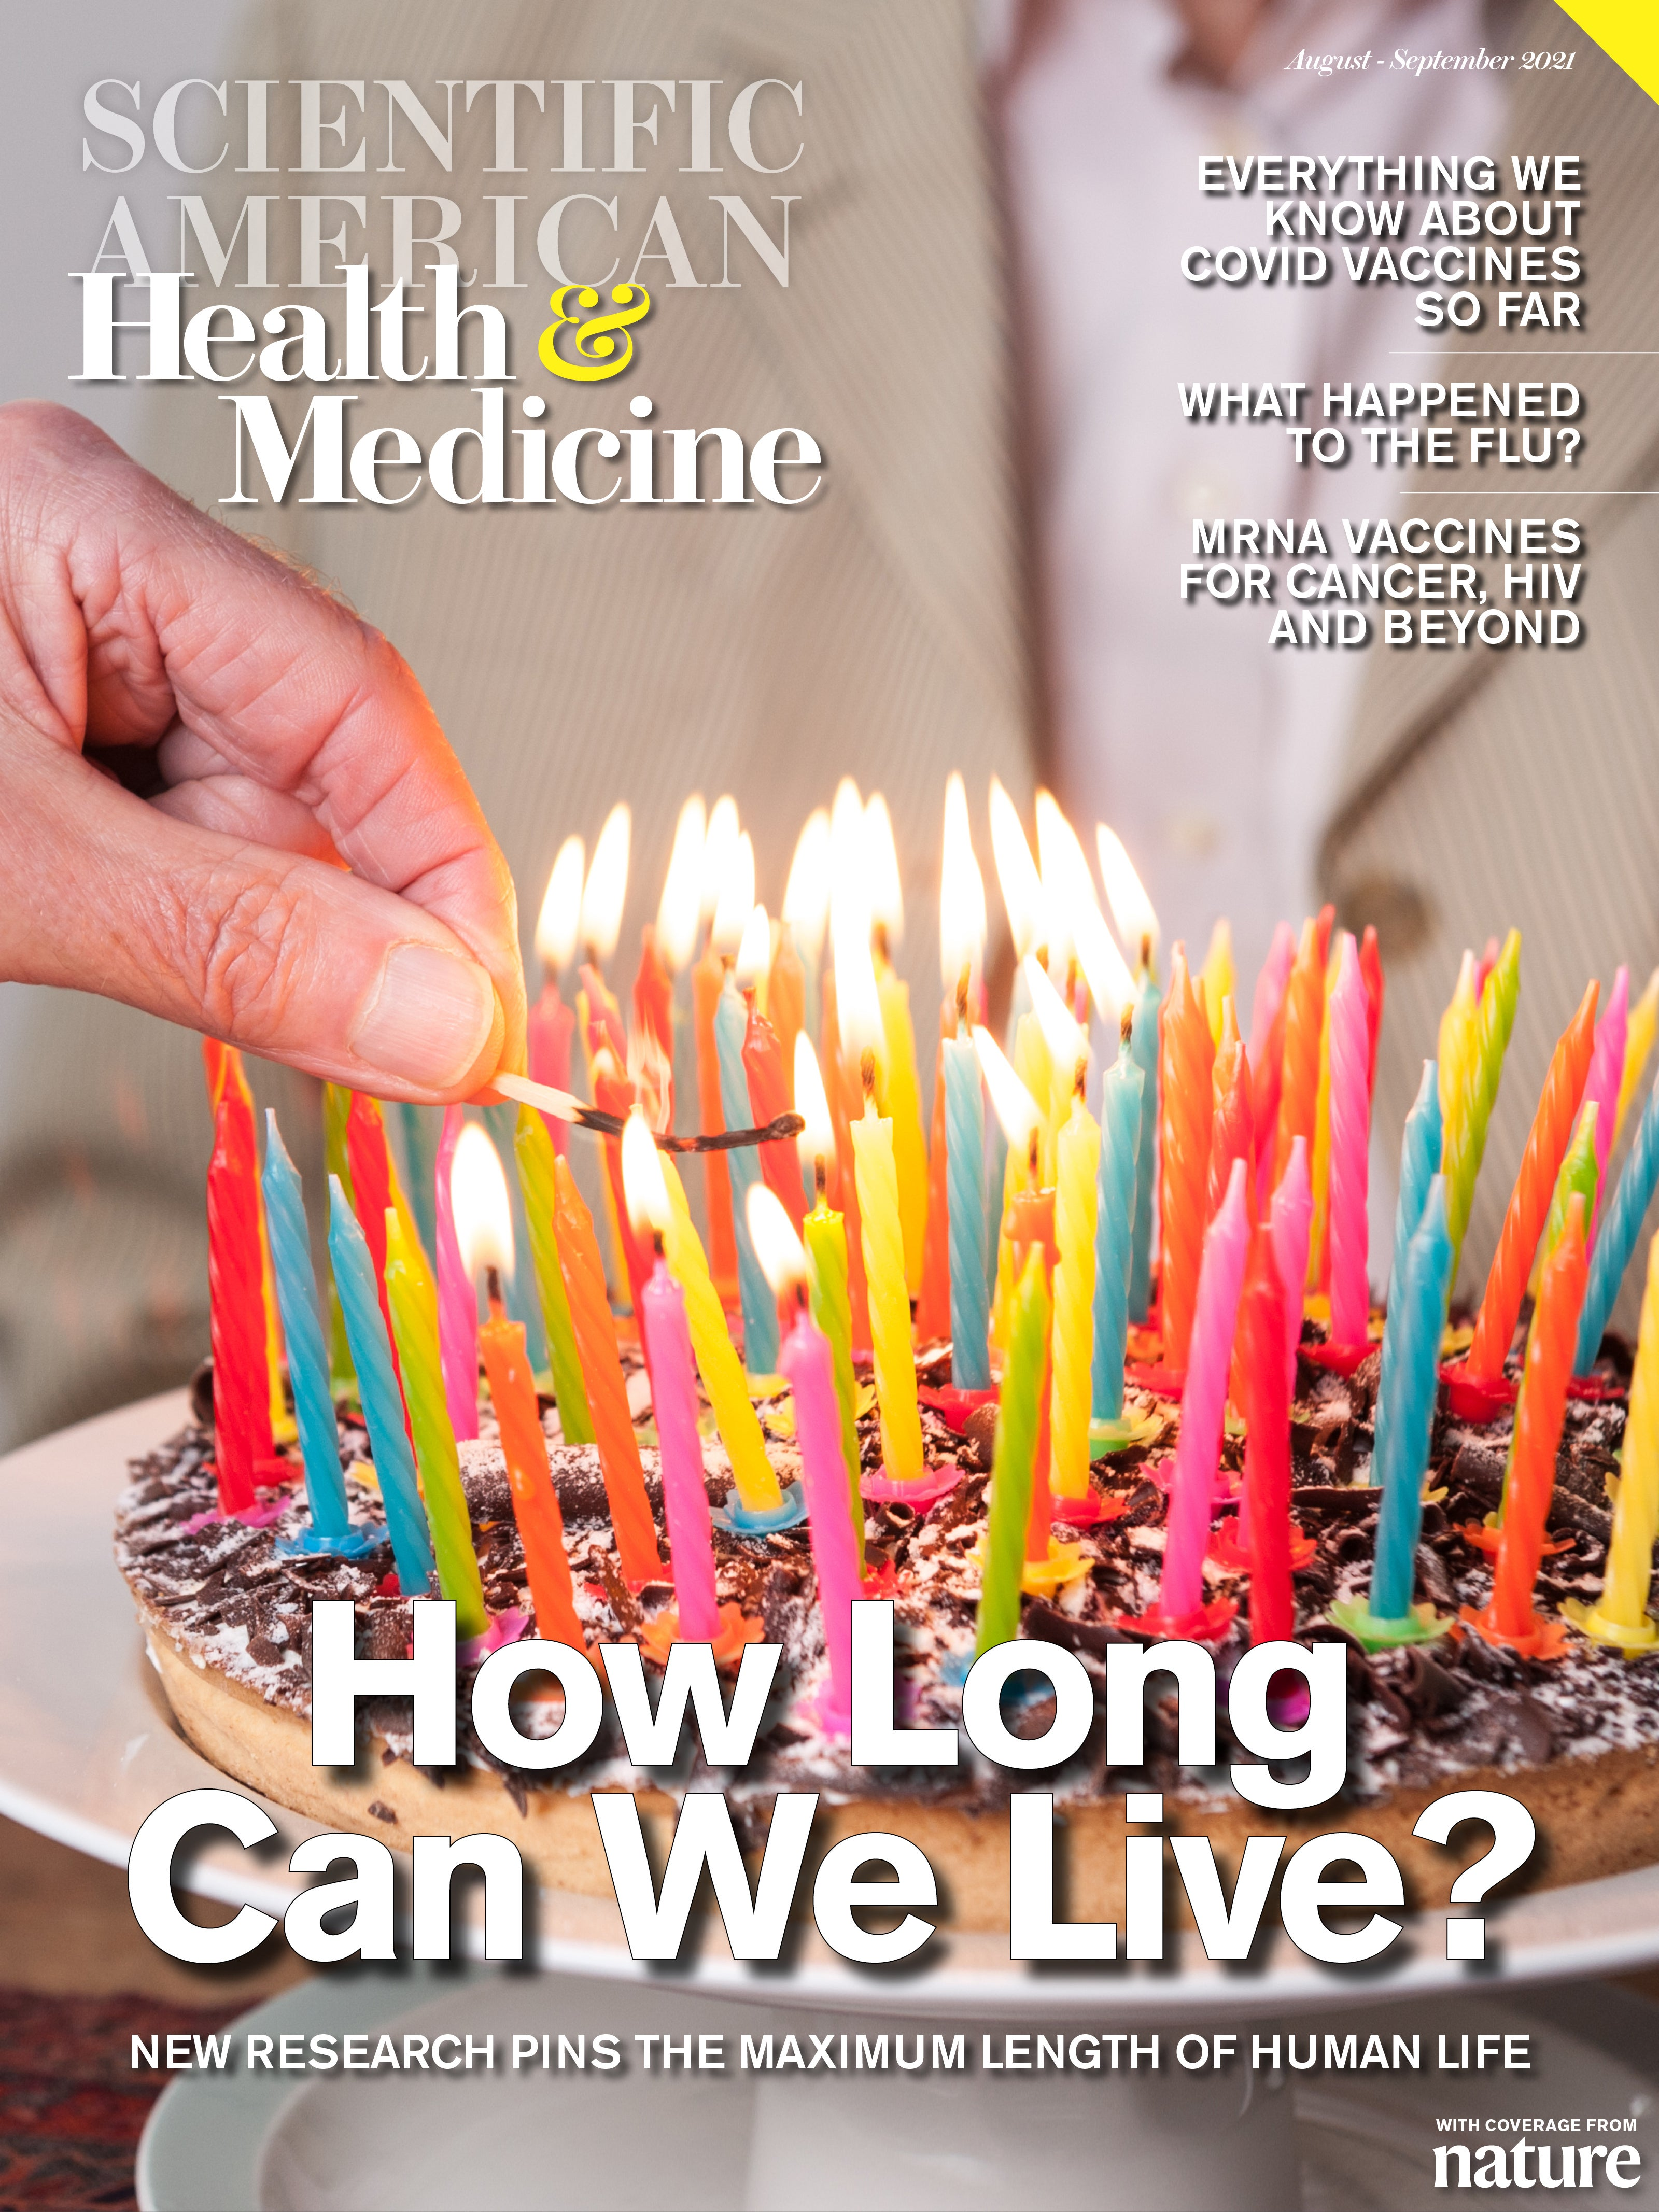 Health & Medicine: How Long Can We Live?